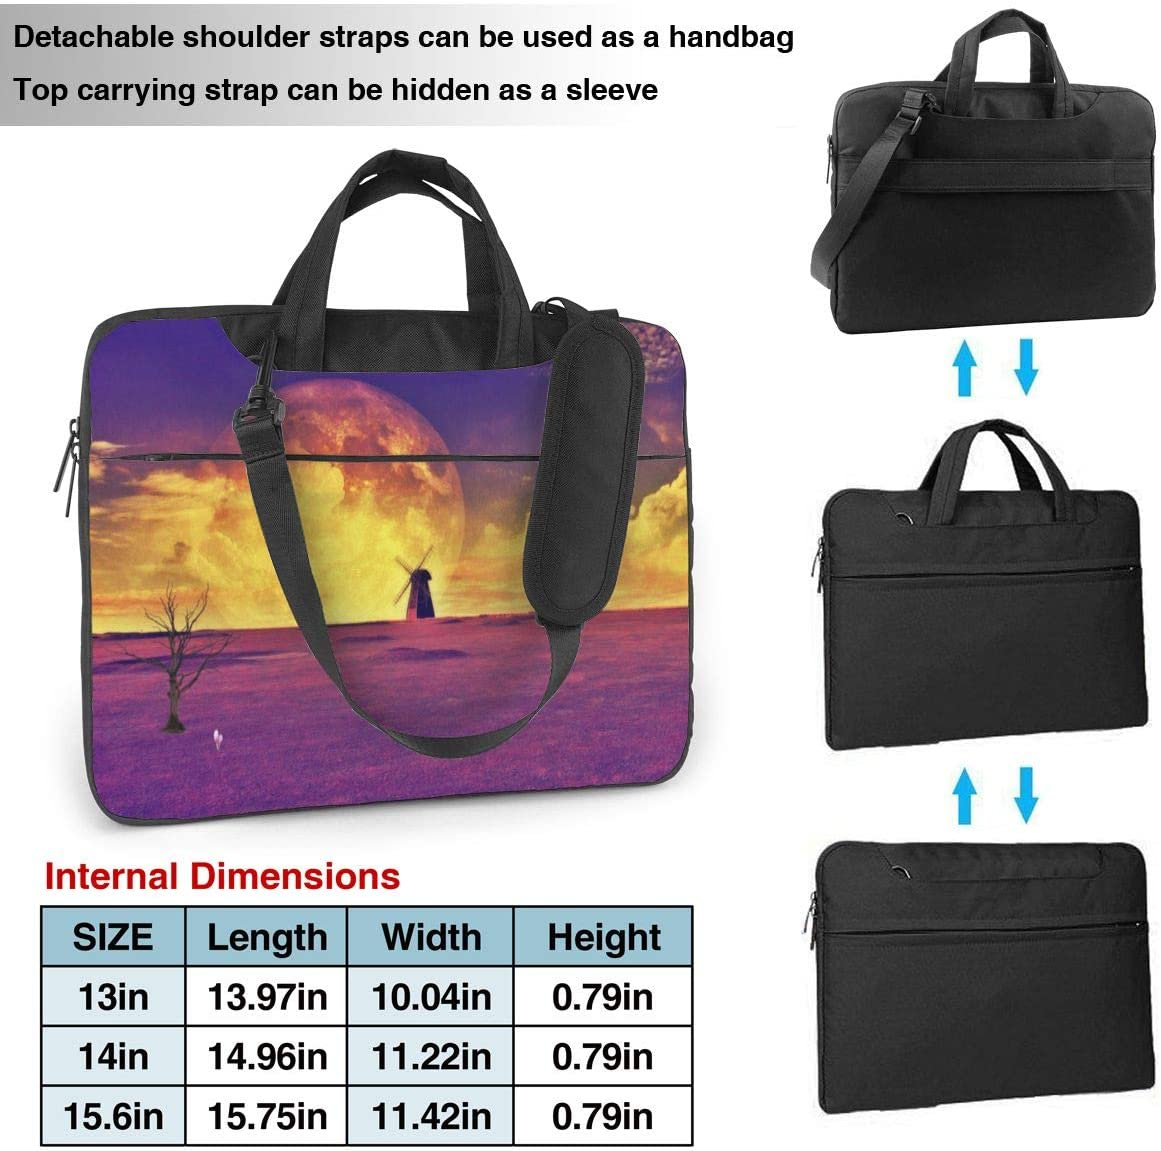 Asus Notebook Laptop Shoulder Bag Carrying Laptop Case 13 Inch Windmill Lavender Field Computer Sleeve Cover with Handle Business Briefcase Protective Bag for Ultrabook Sony MacBook Samsung